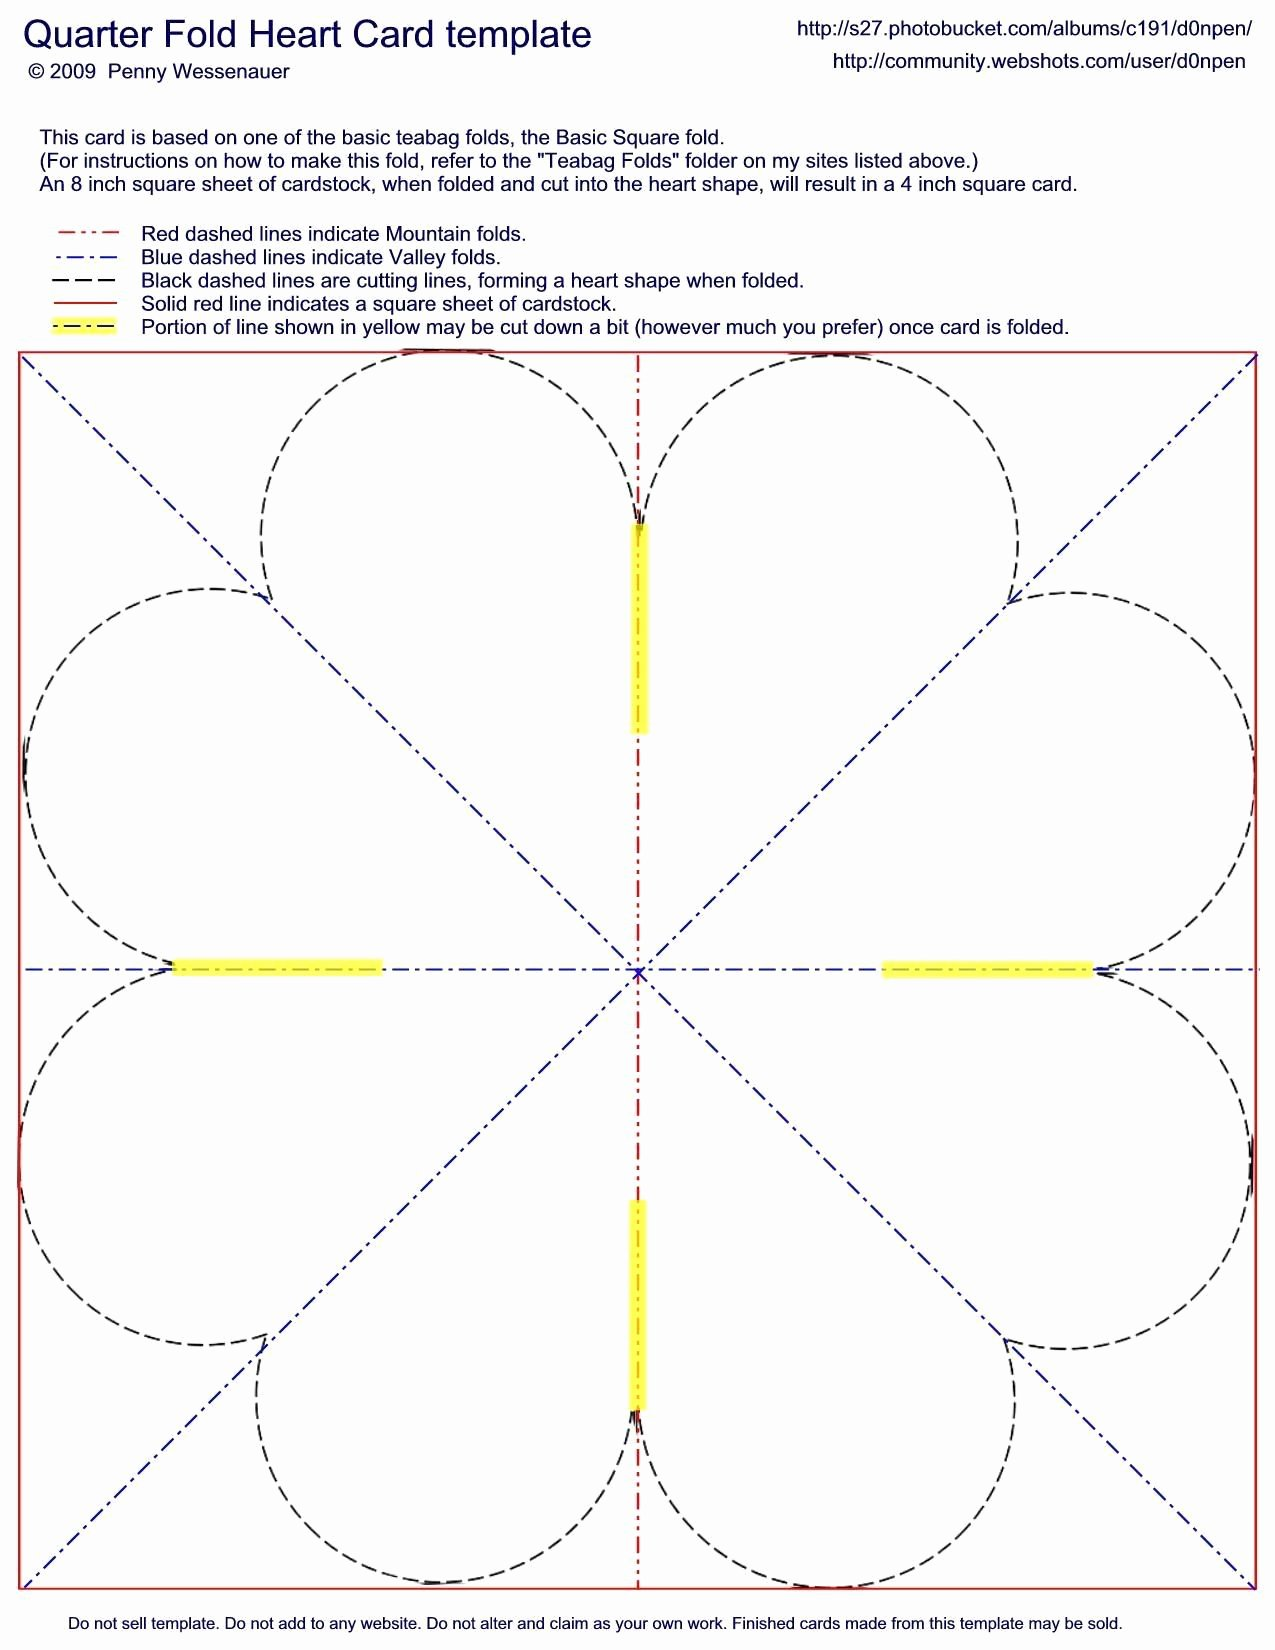 Quarter Fold Cards Template Beautiful Card Templates Quarter Fold Heart Card Image by D0npen